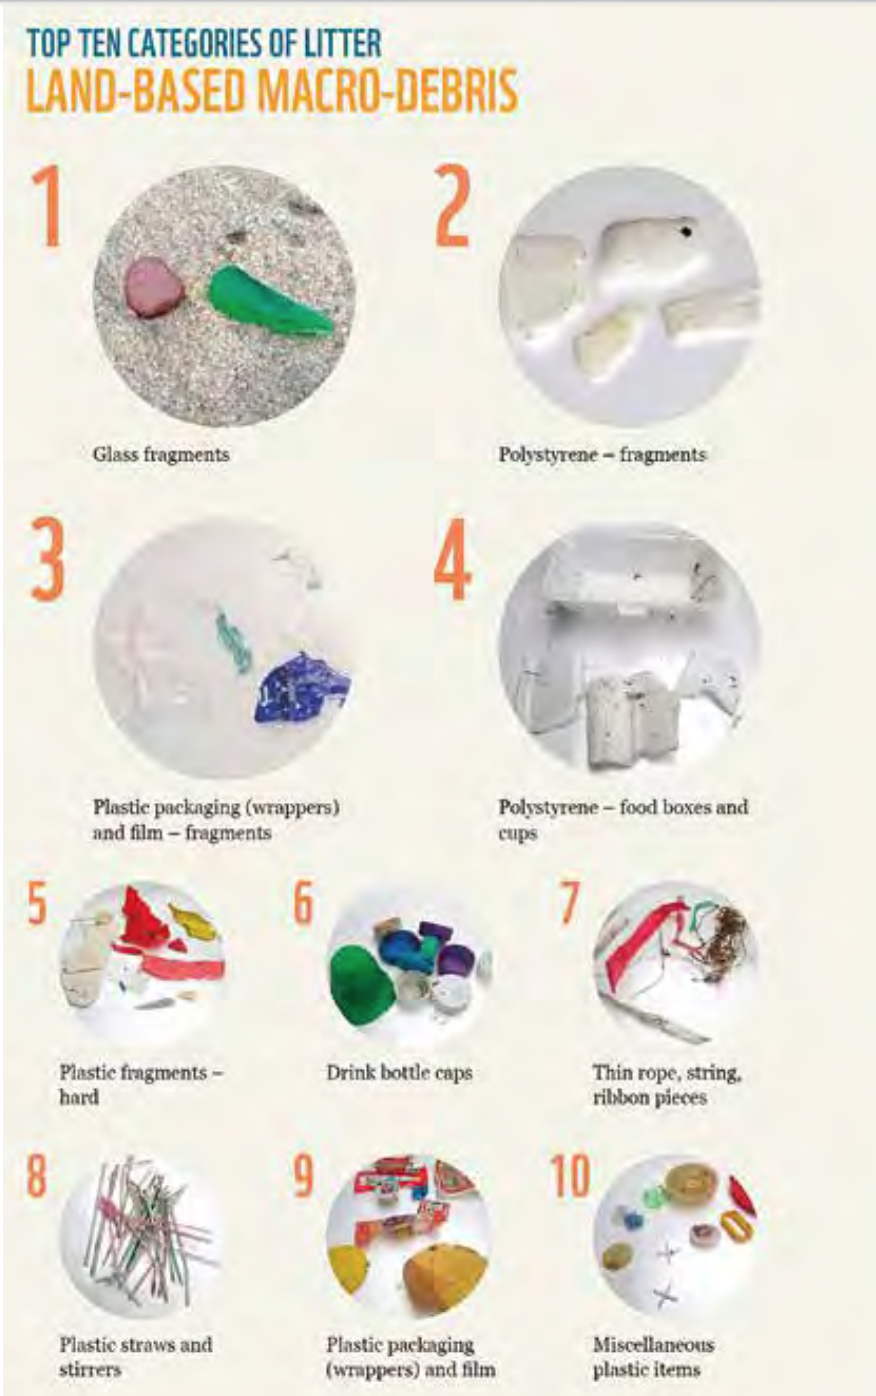 Top 10 Categories of Litter